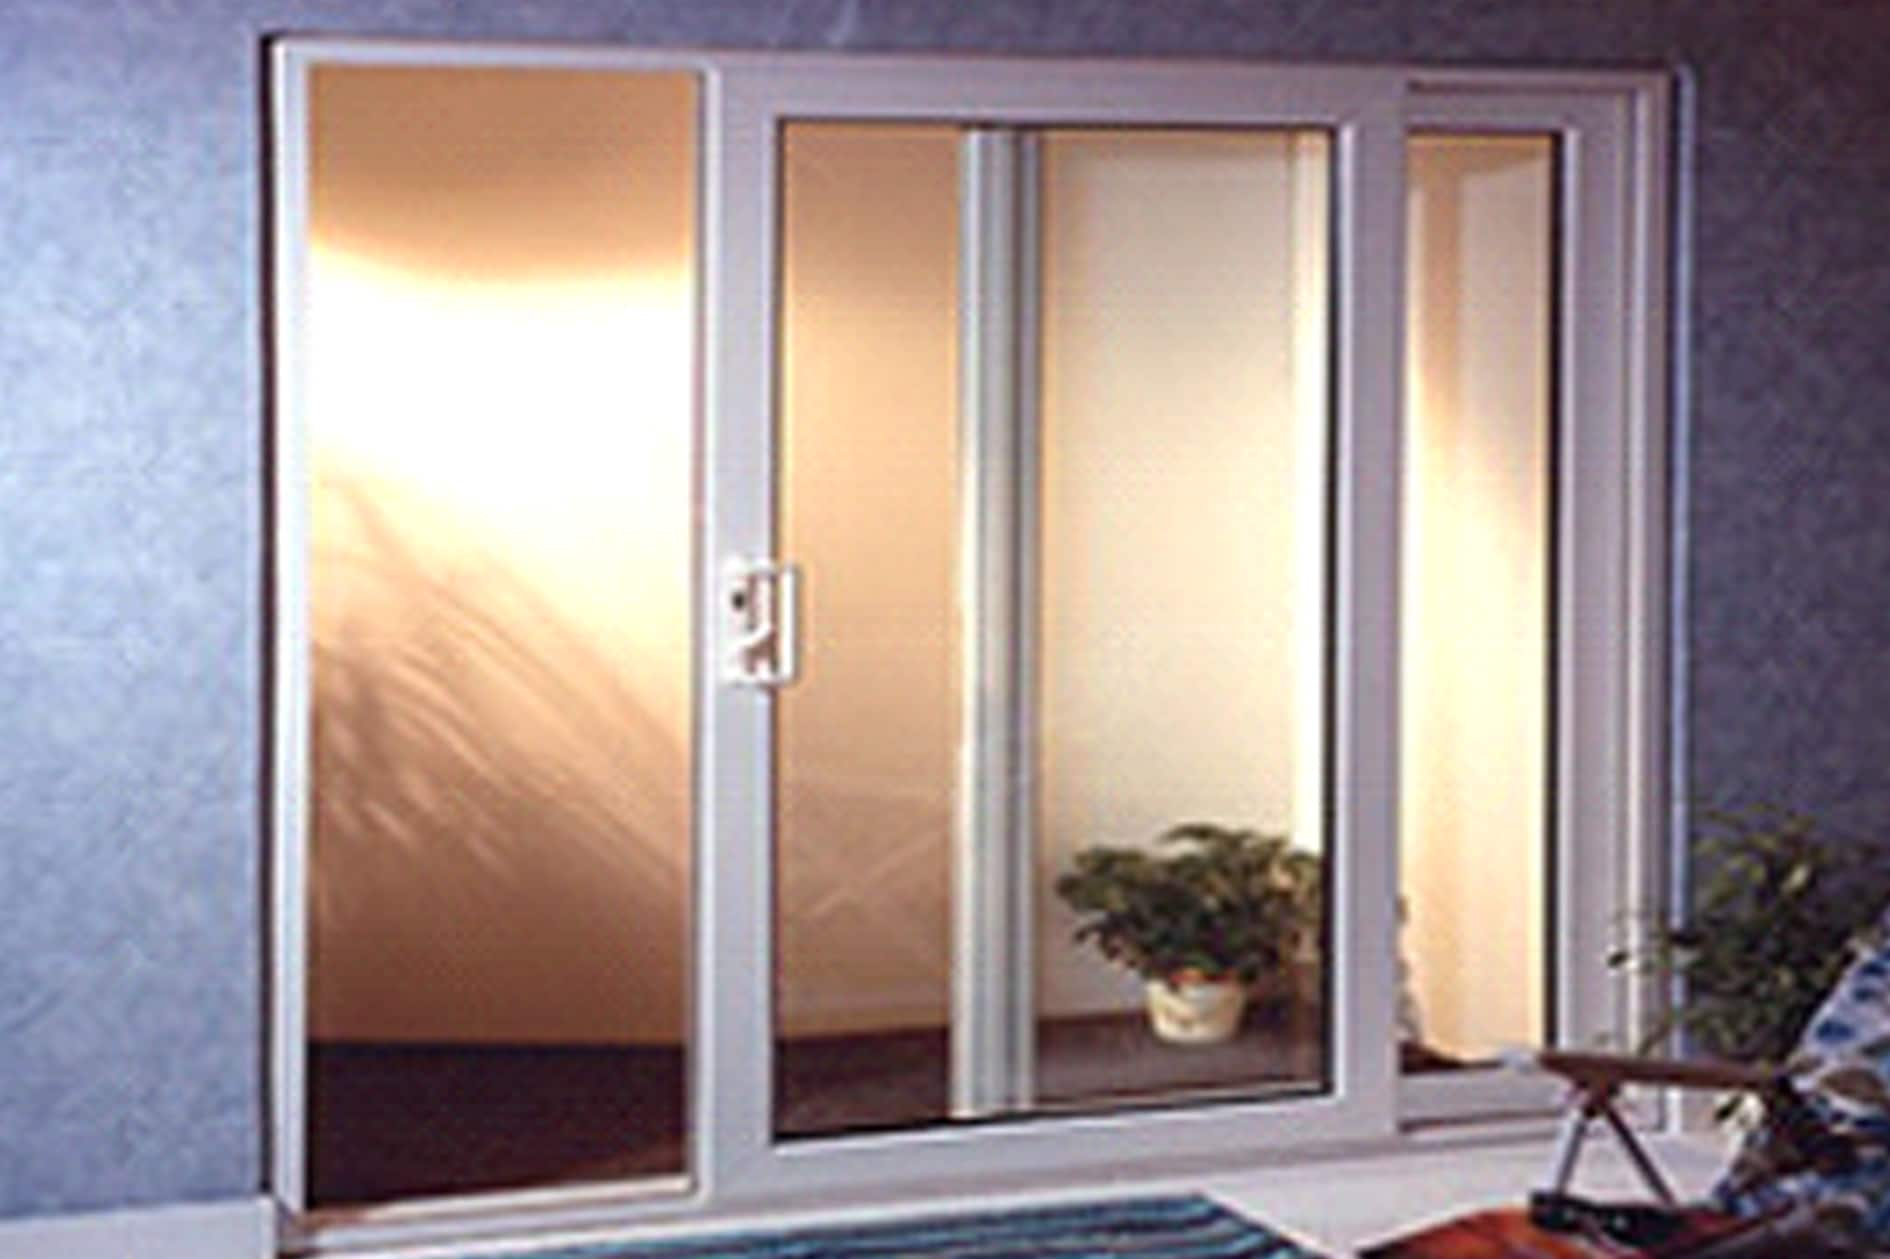 Balcony door aluminium heritage balcony doors for Balcony window